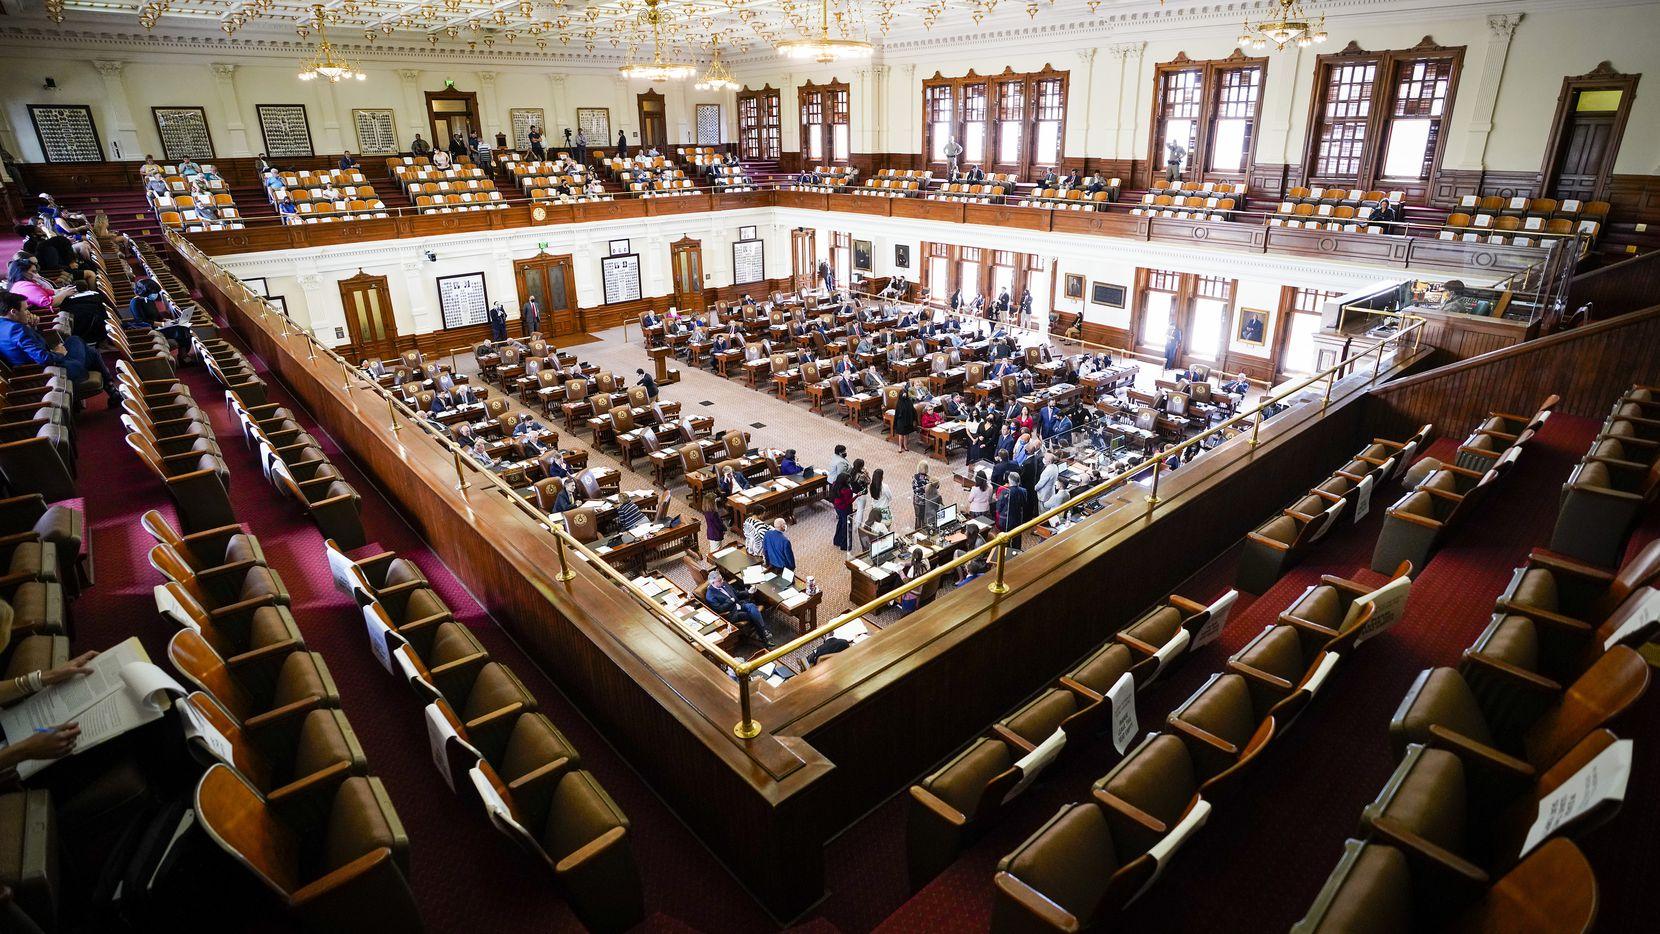 The Texas Legislature on Thursday finished work on a $248.6 billion, two-year state budget that lawmakers say keeps their 2019 promises to better fund public schools. Critics, though, called it too chintzy for a fast-growing state's needs.